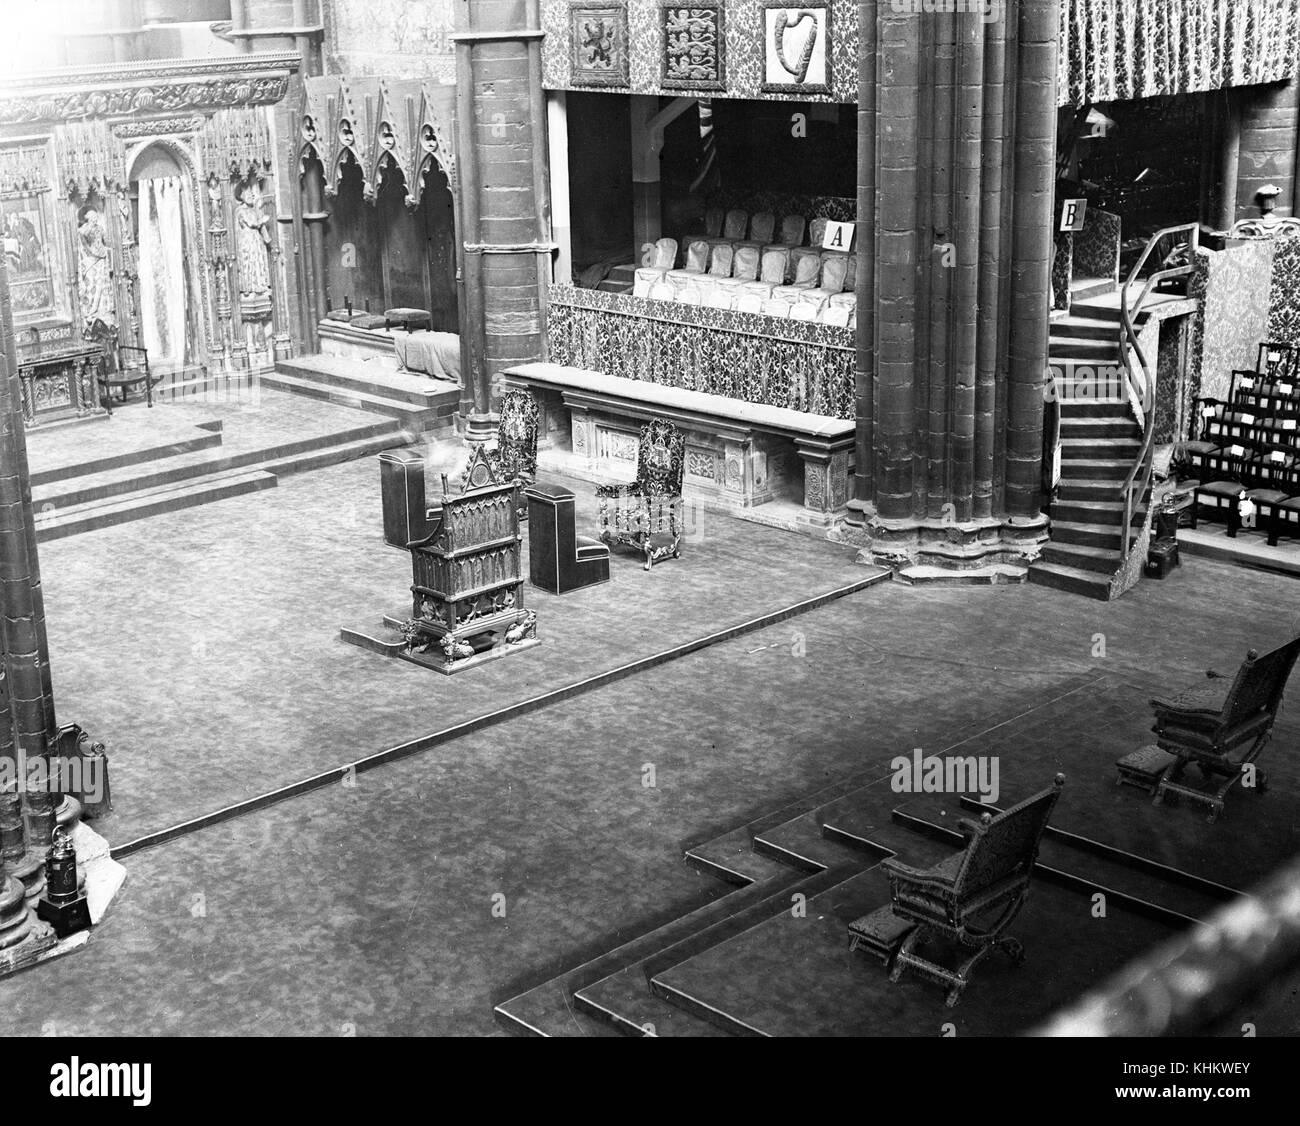 Coronation chairs at Westminster Abbey. - Stock Image & Coronation Westminster Abbey Black and White Stock Photos u0026 Images ...